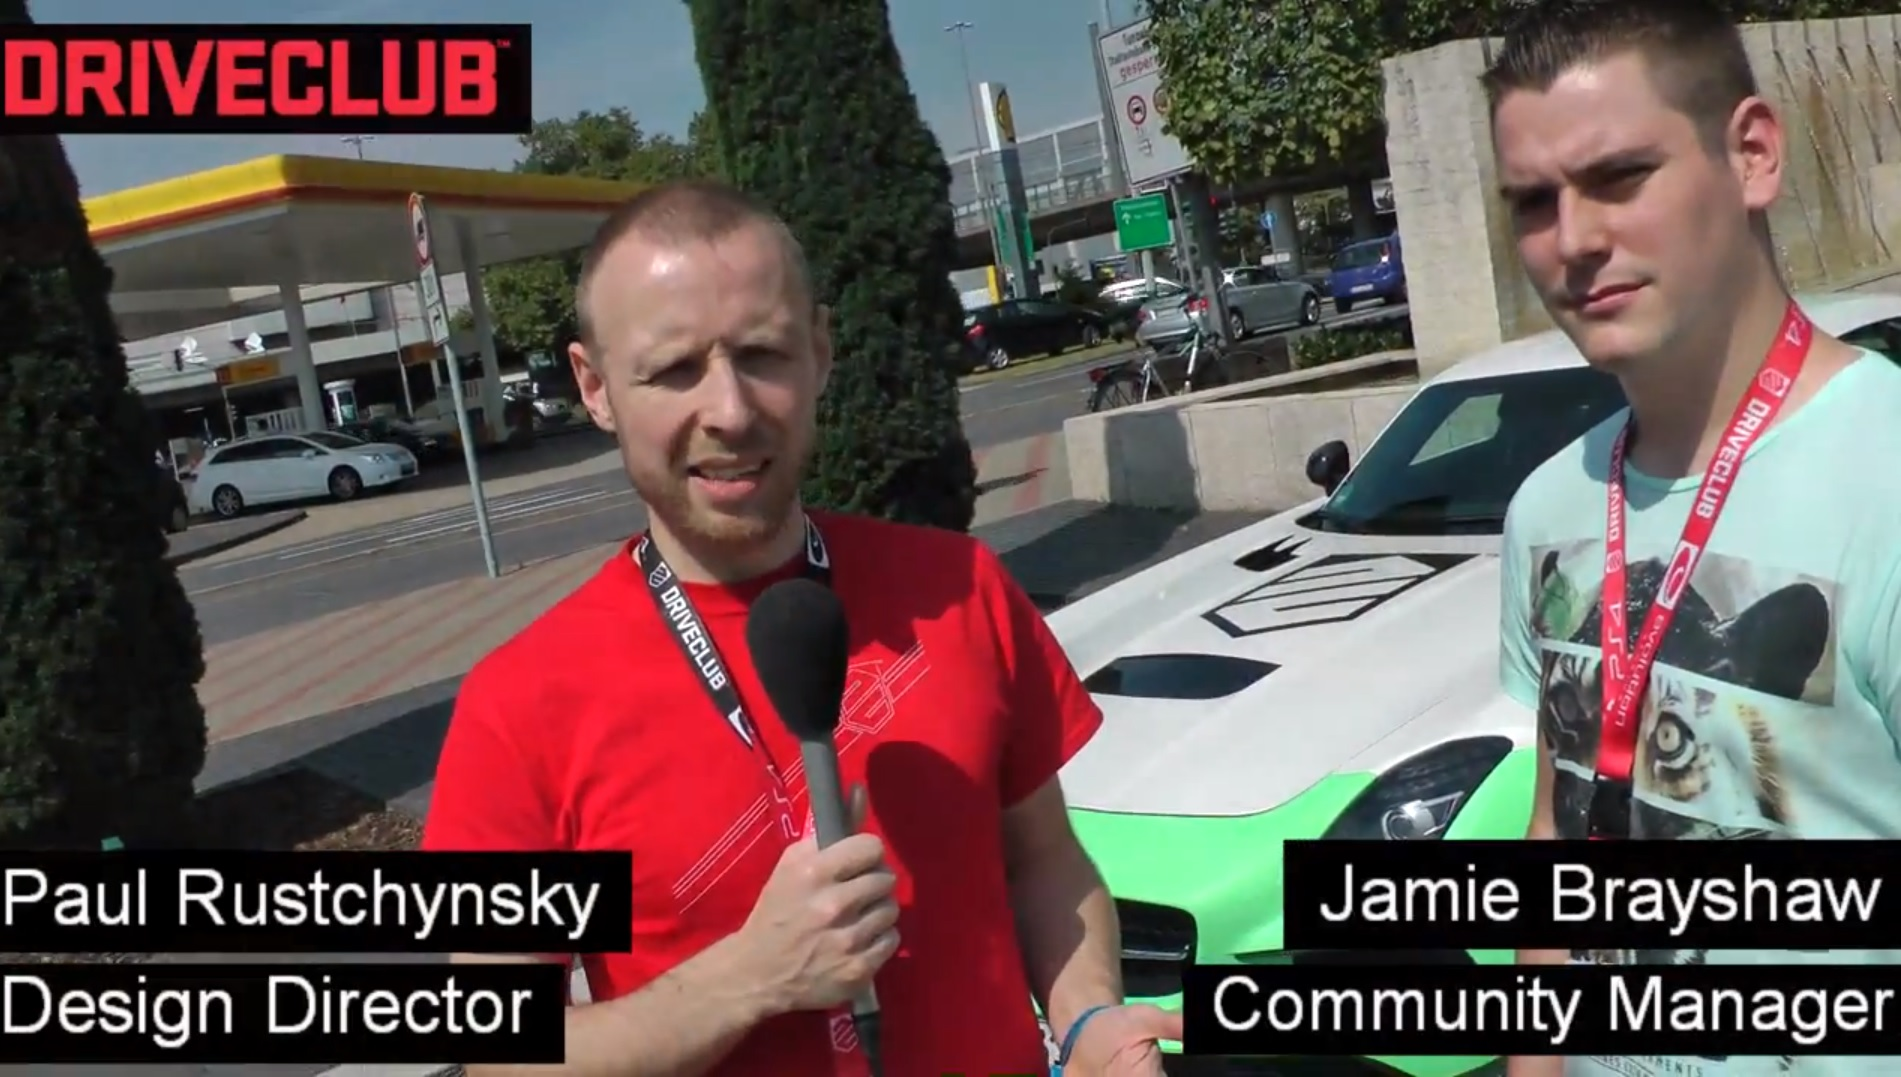 DriveClub Gamescom interview